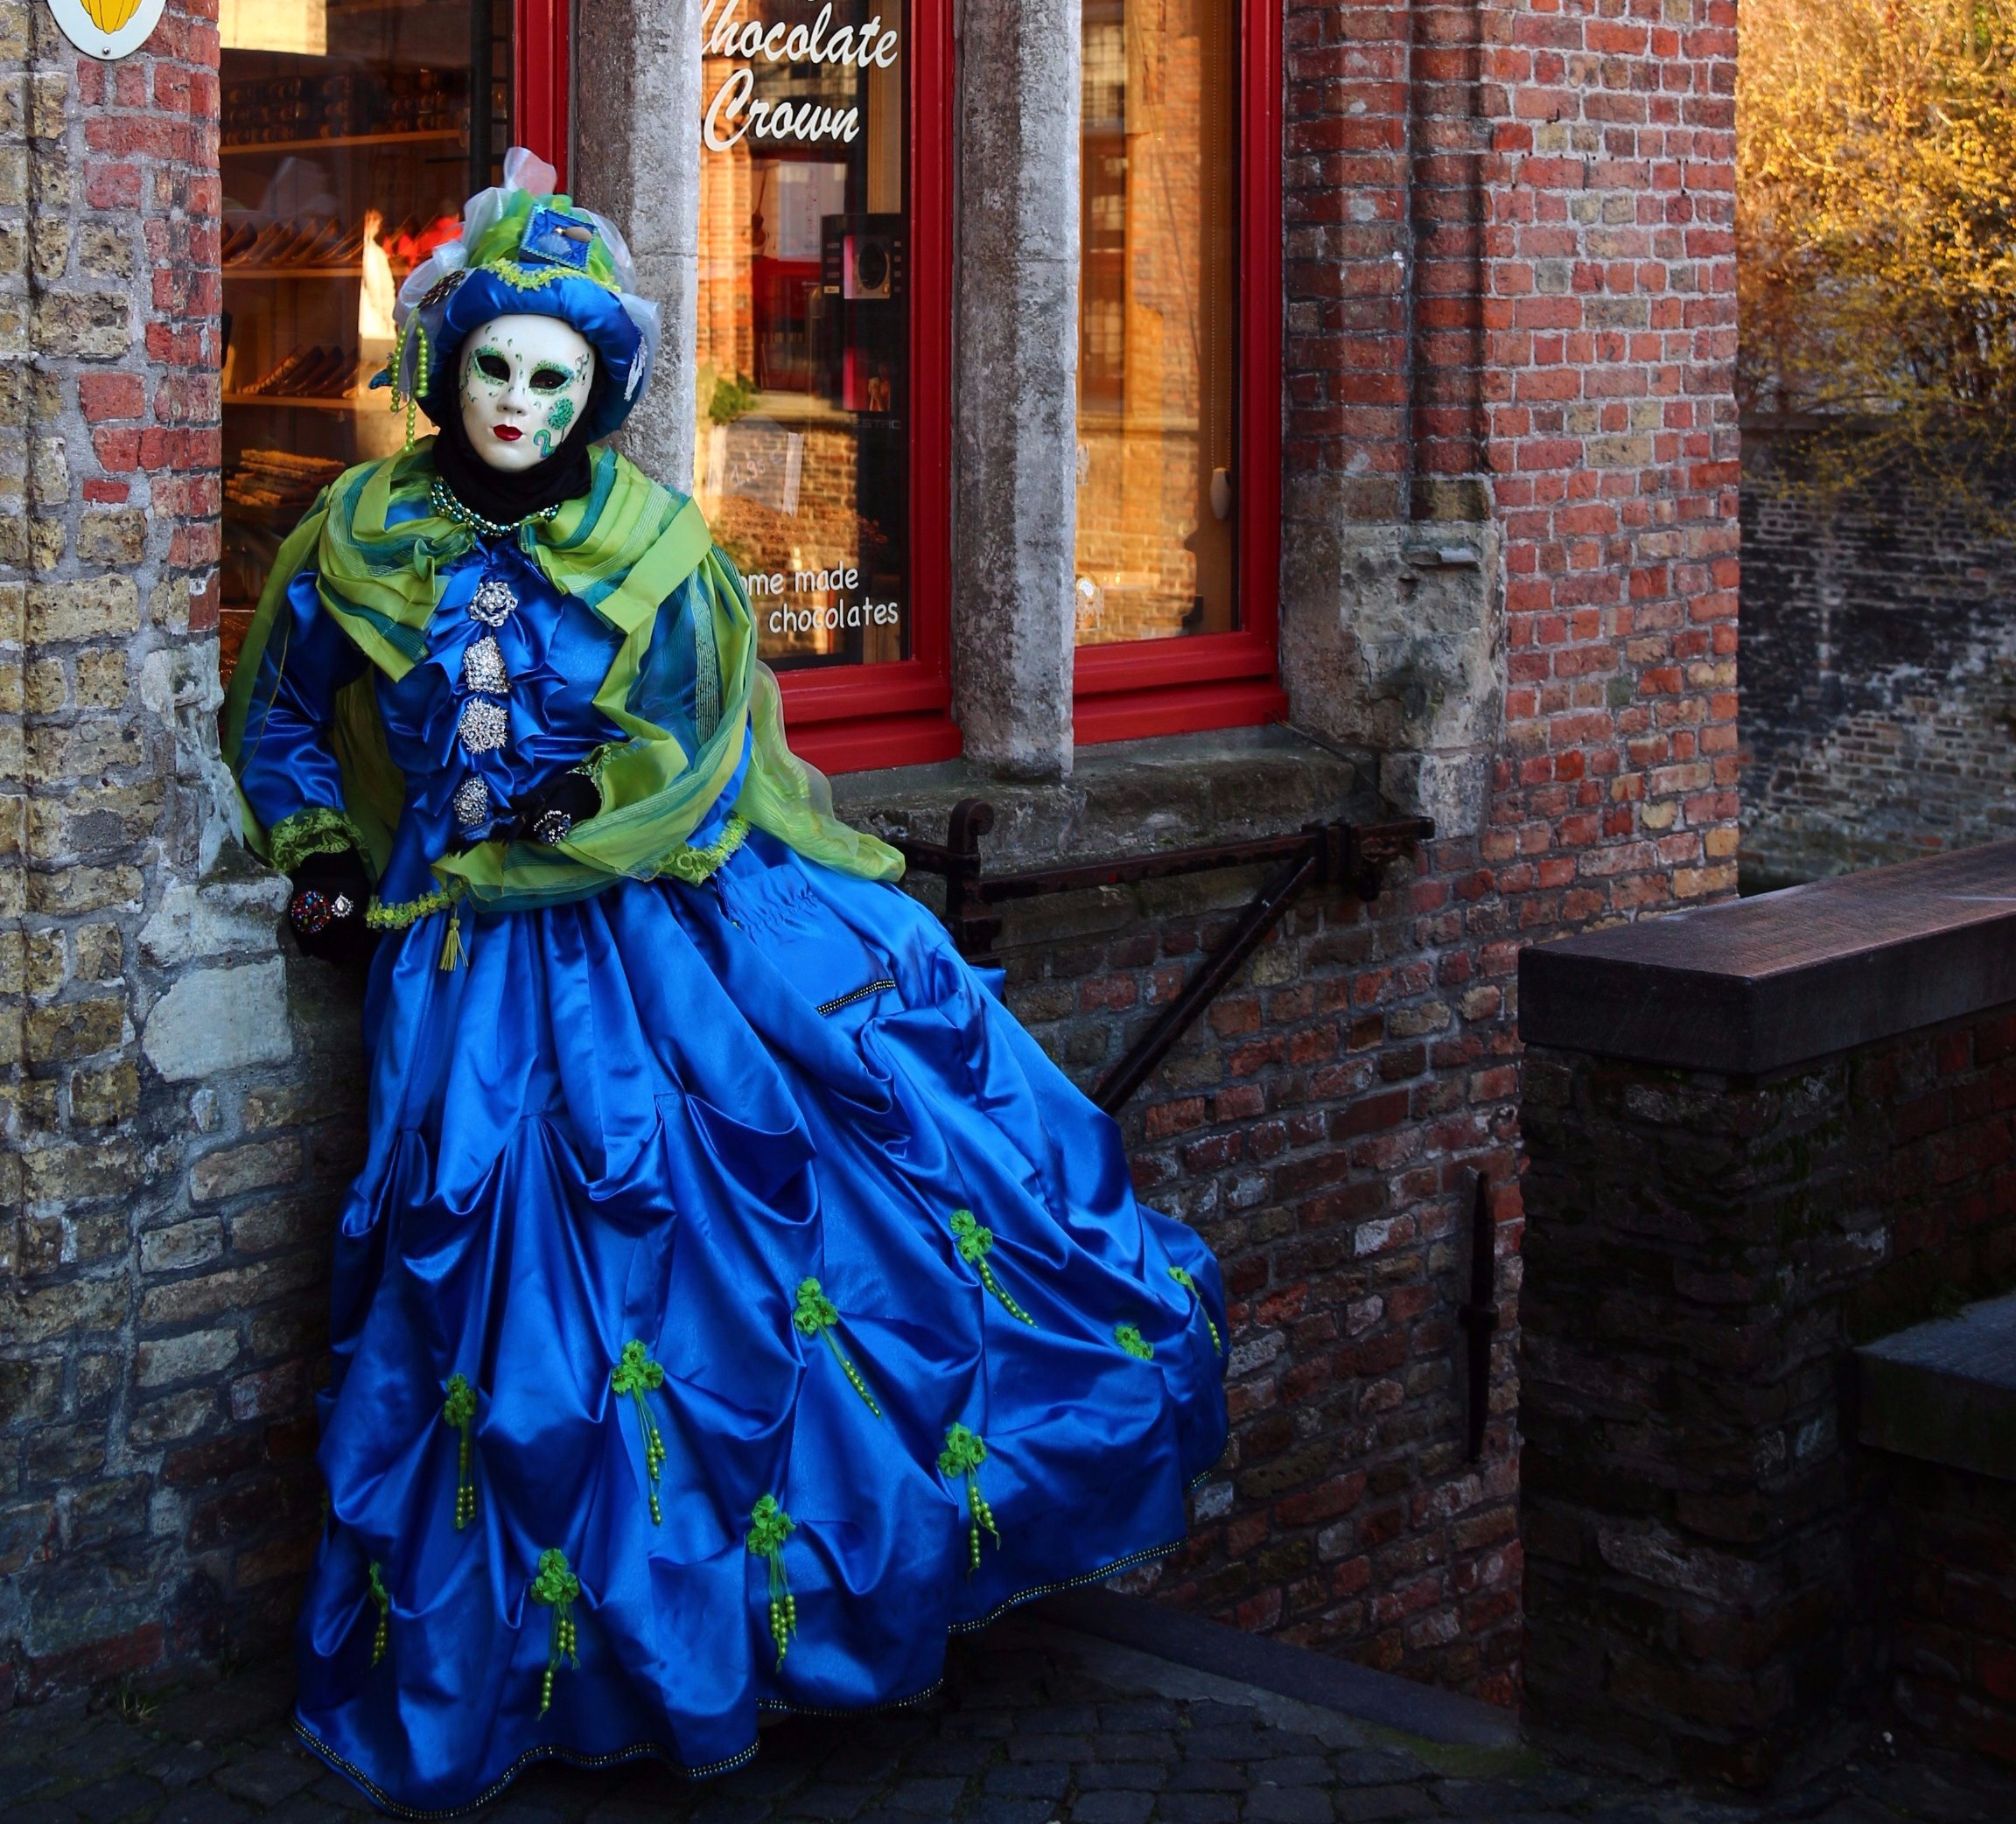 Venetian costumes in Bruges. A masked performer wearing a blue venetian  costume is posing in